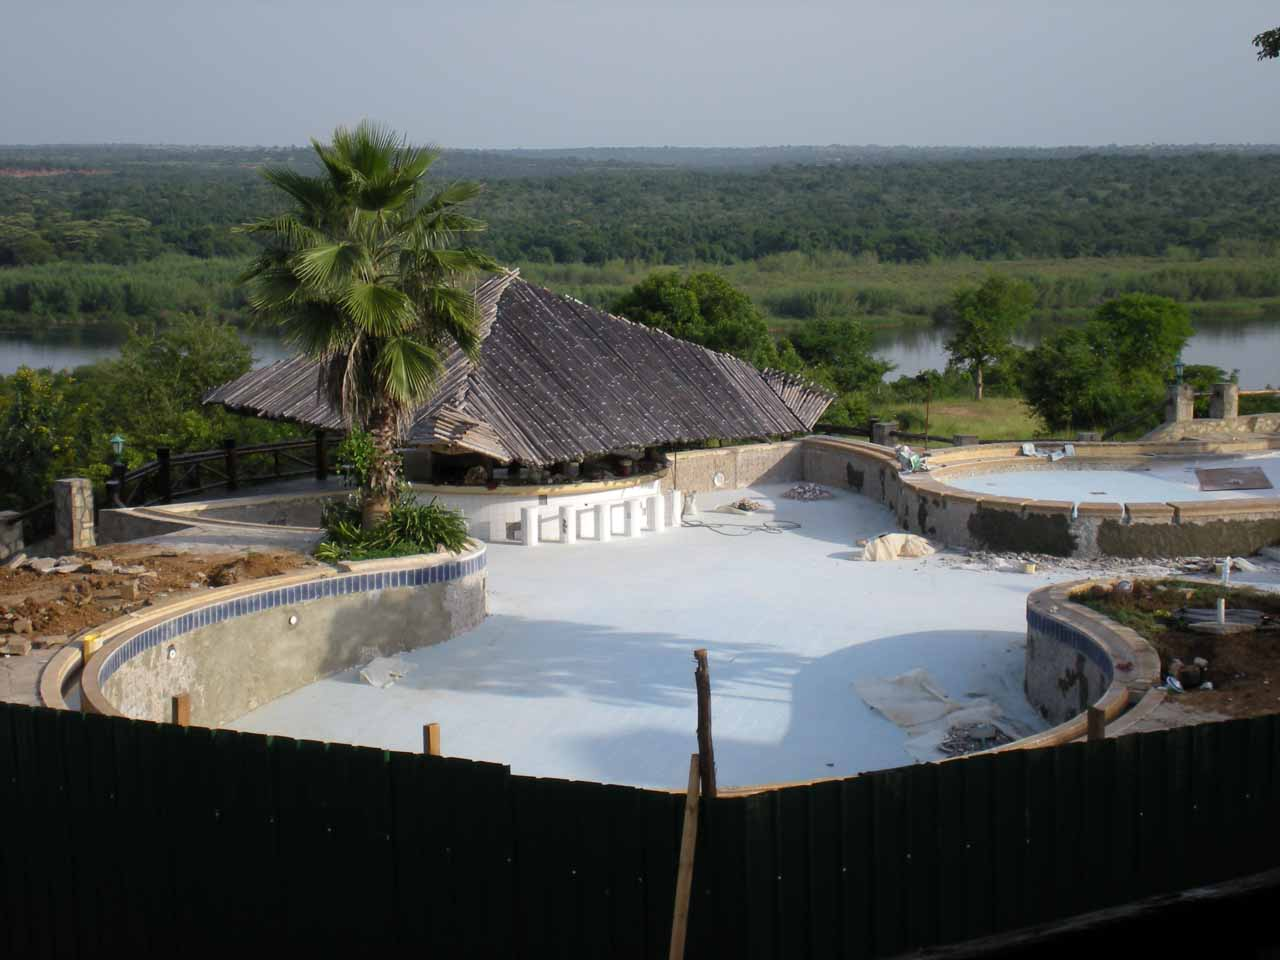 The closed swim-up bar at the Paraa Safari Lodge